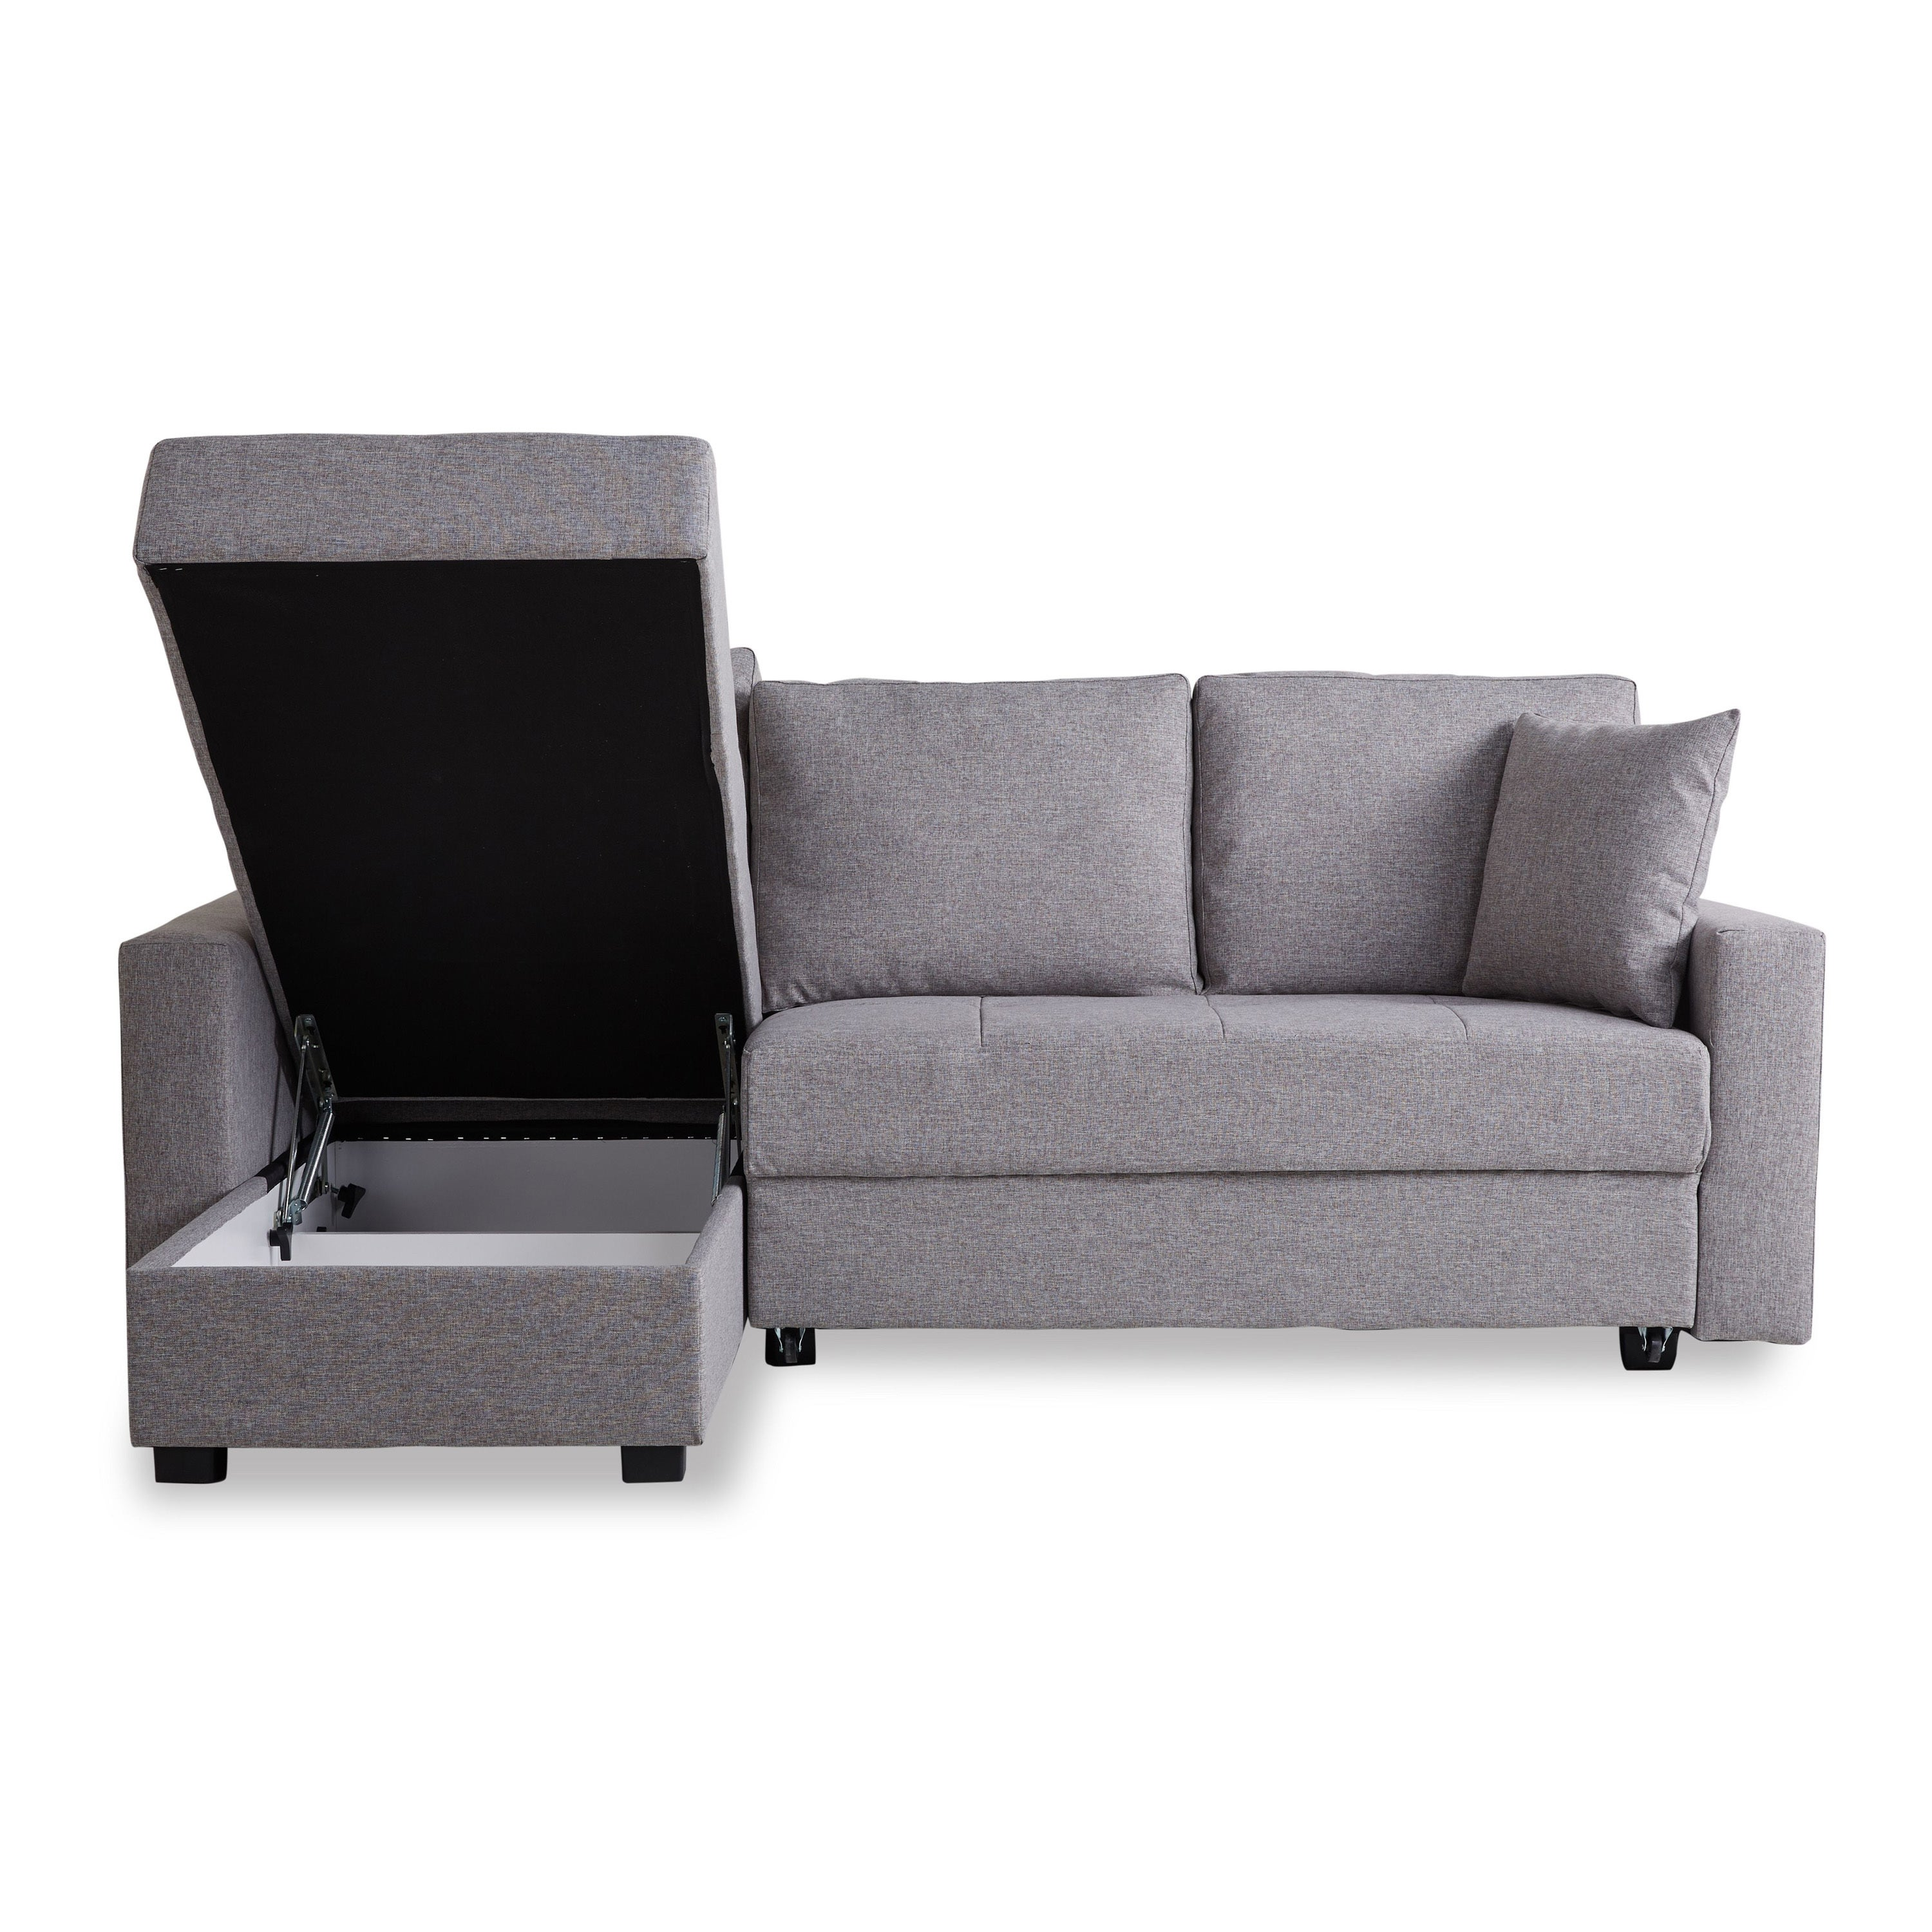 Shop Aspen Ash Convertible Sectional Storage Sofa Bed   Free Shipping Today    Overstock.com   10191432